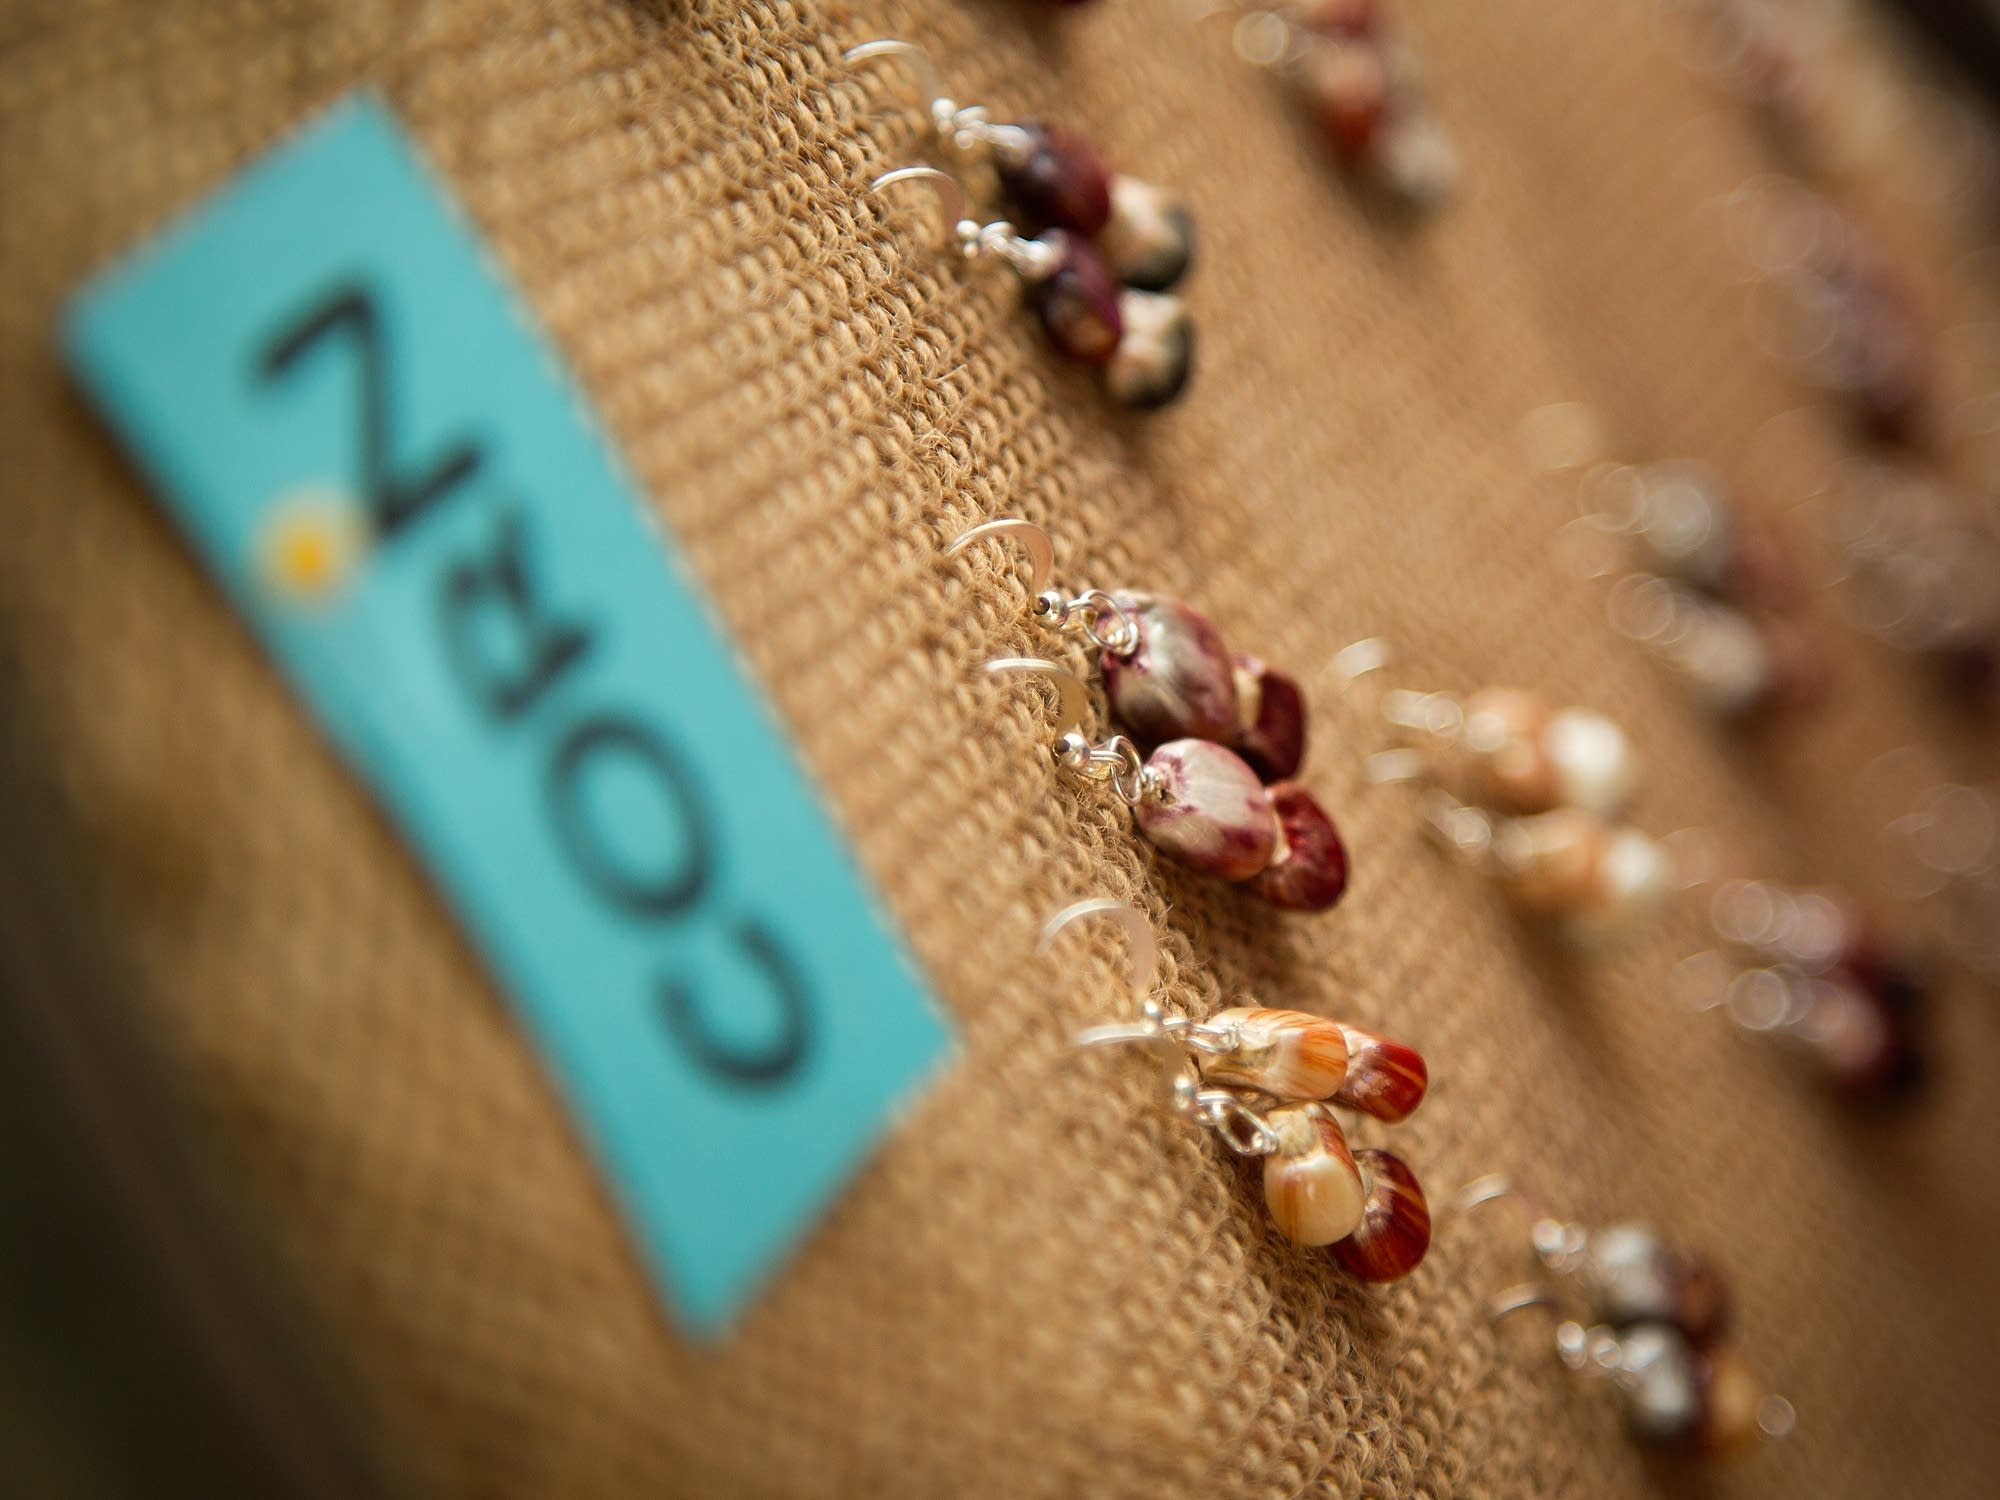 Jewelry made of corn kernels was on display.